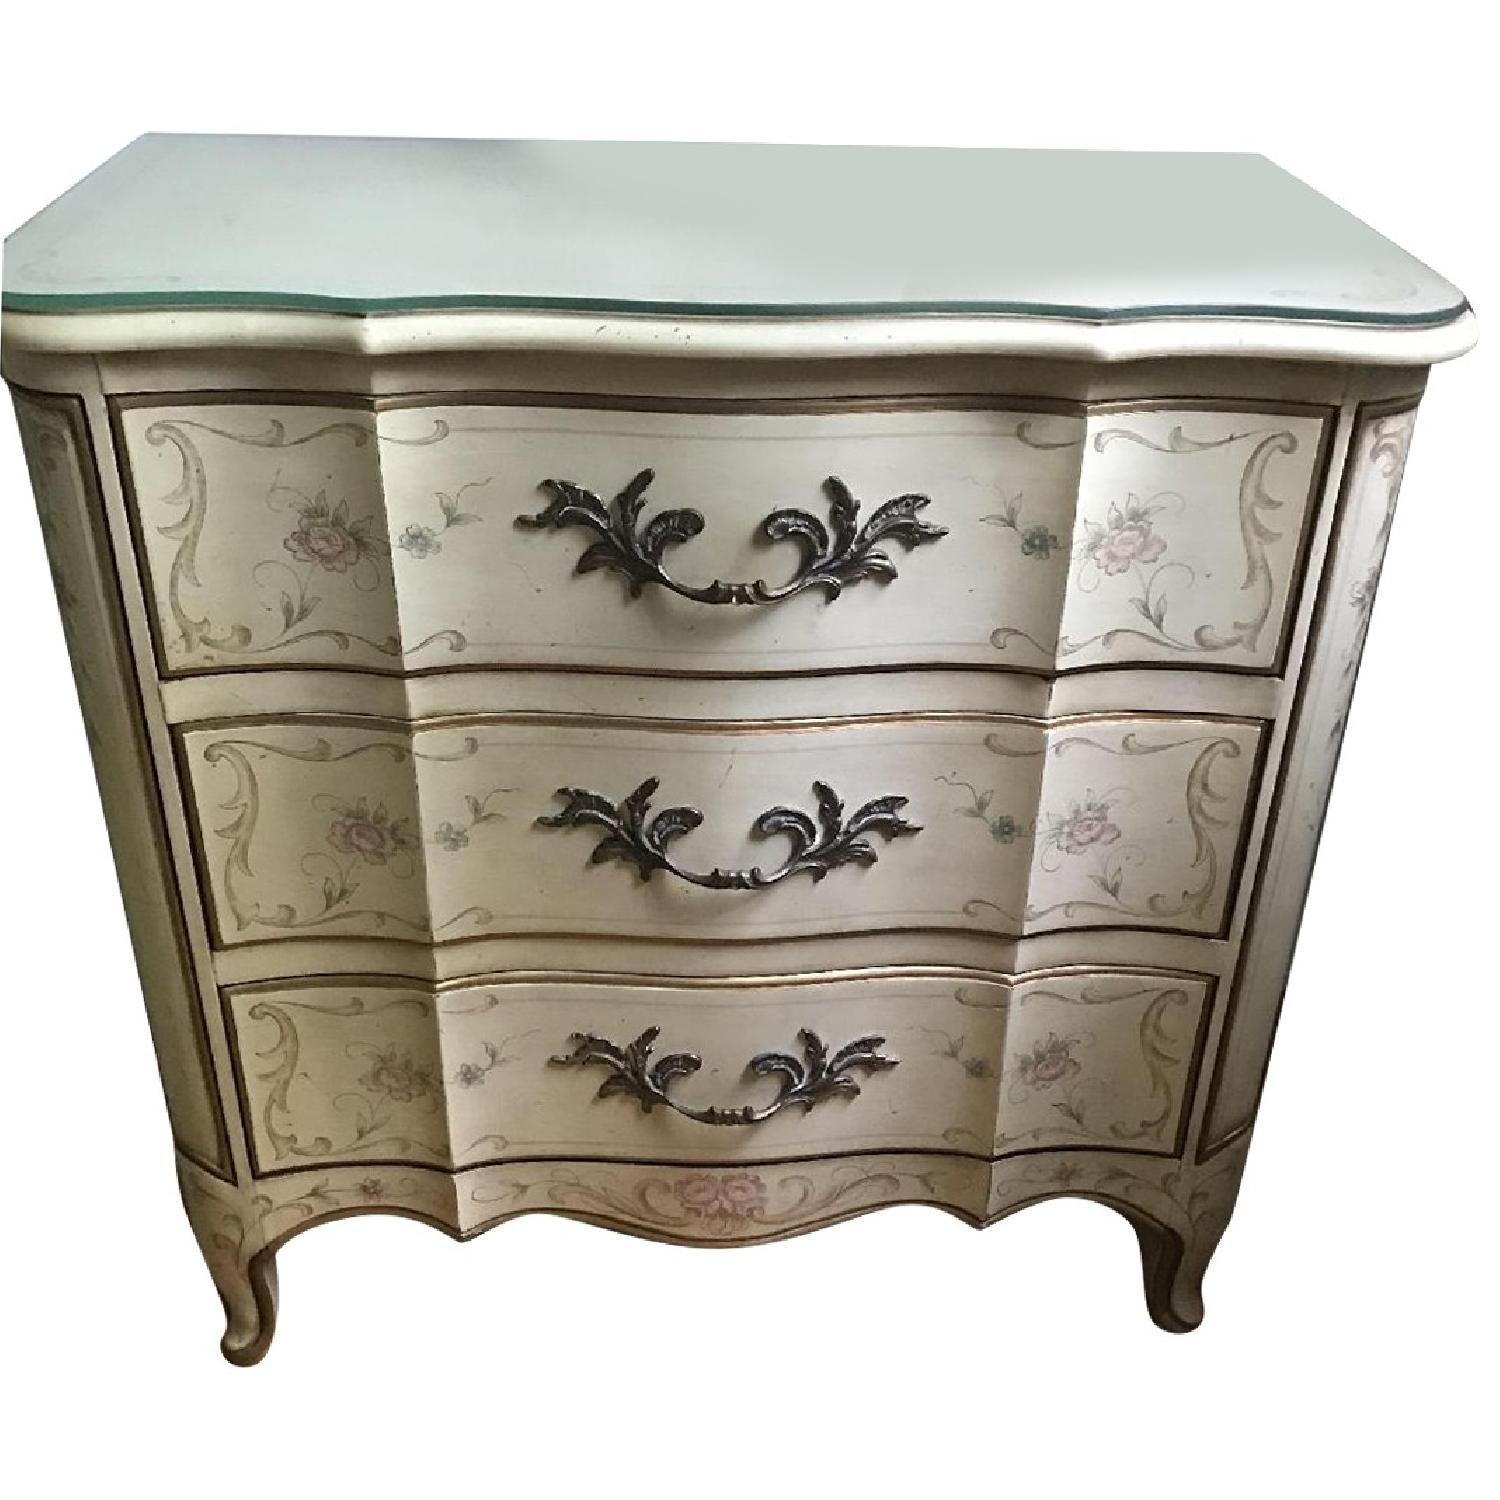 Karges Mid Century French Provincial Nightstands - image-0